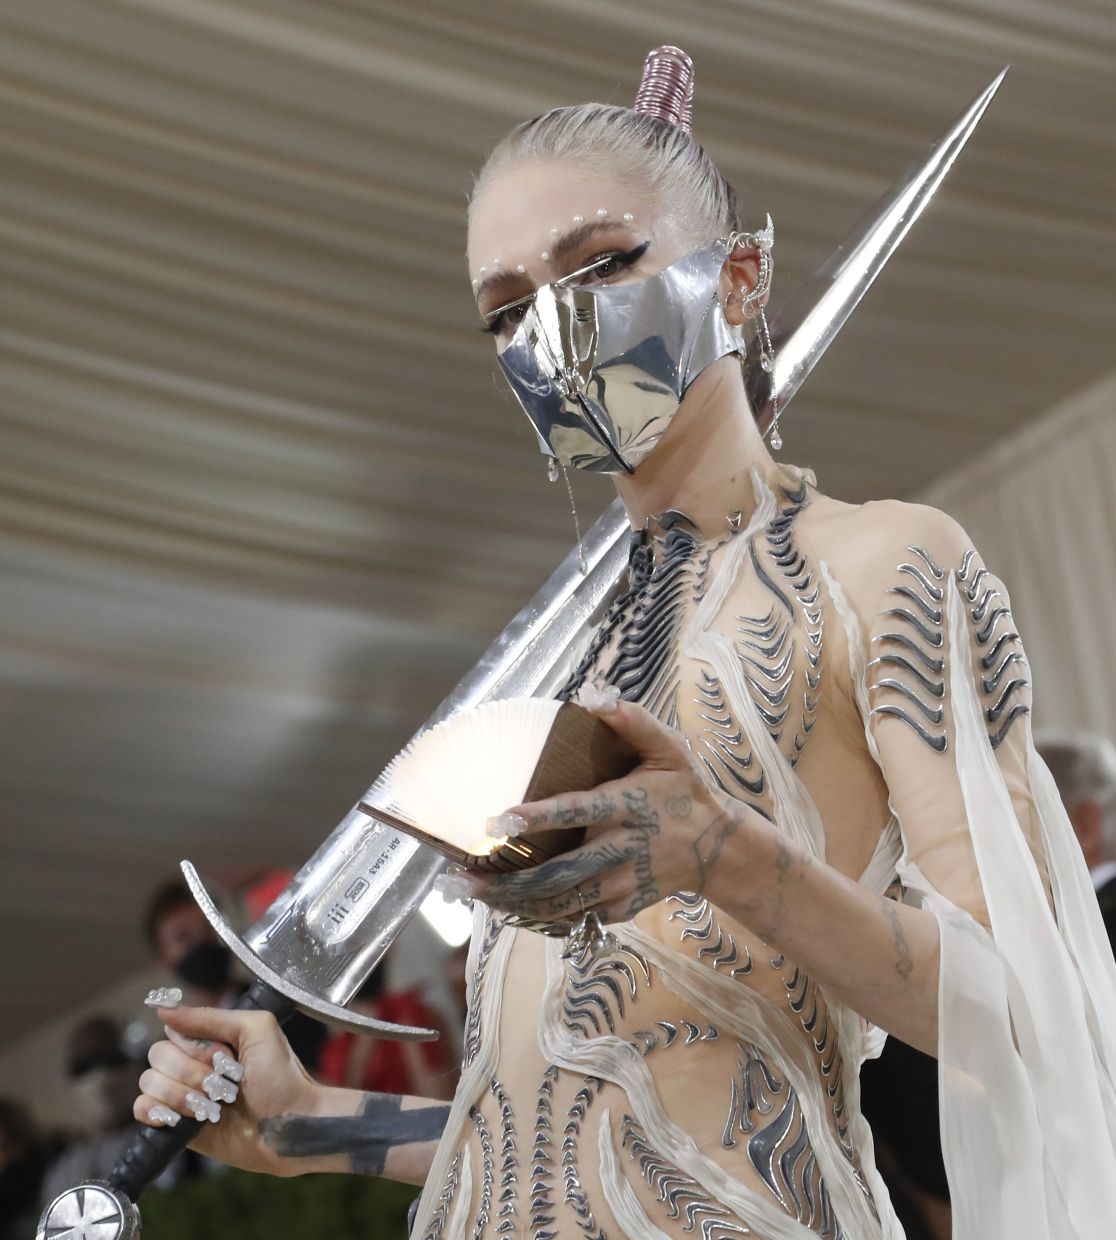 Grimes carrying a sword on the red carpet. Photo: Reuters